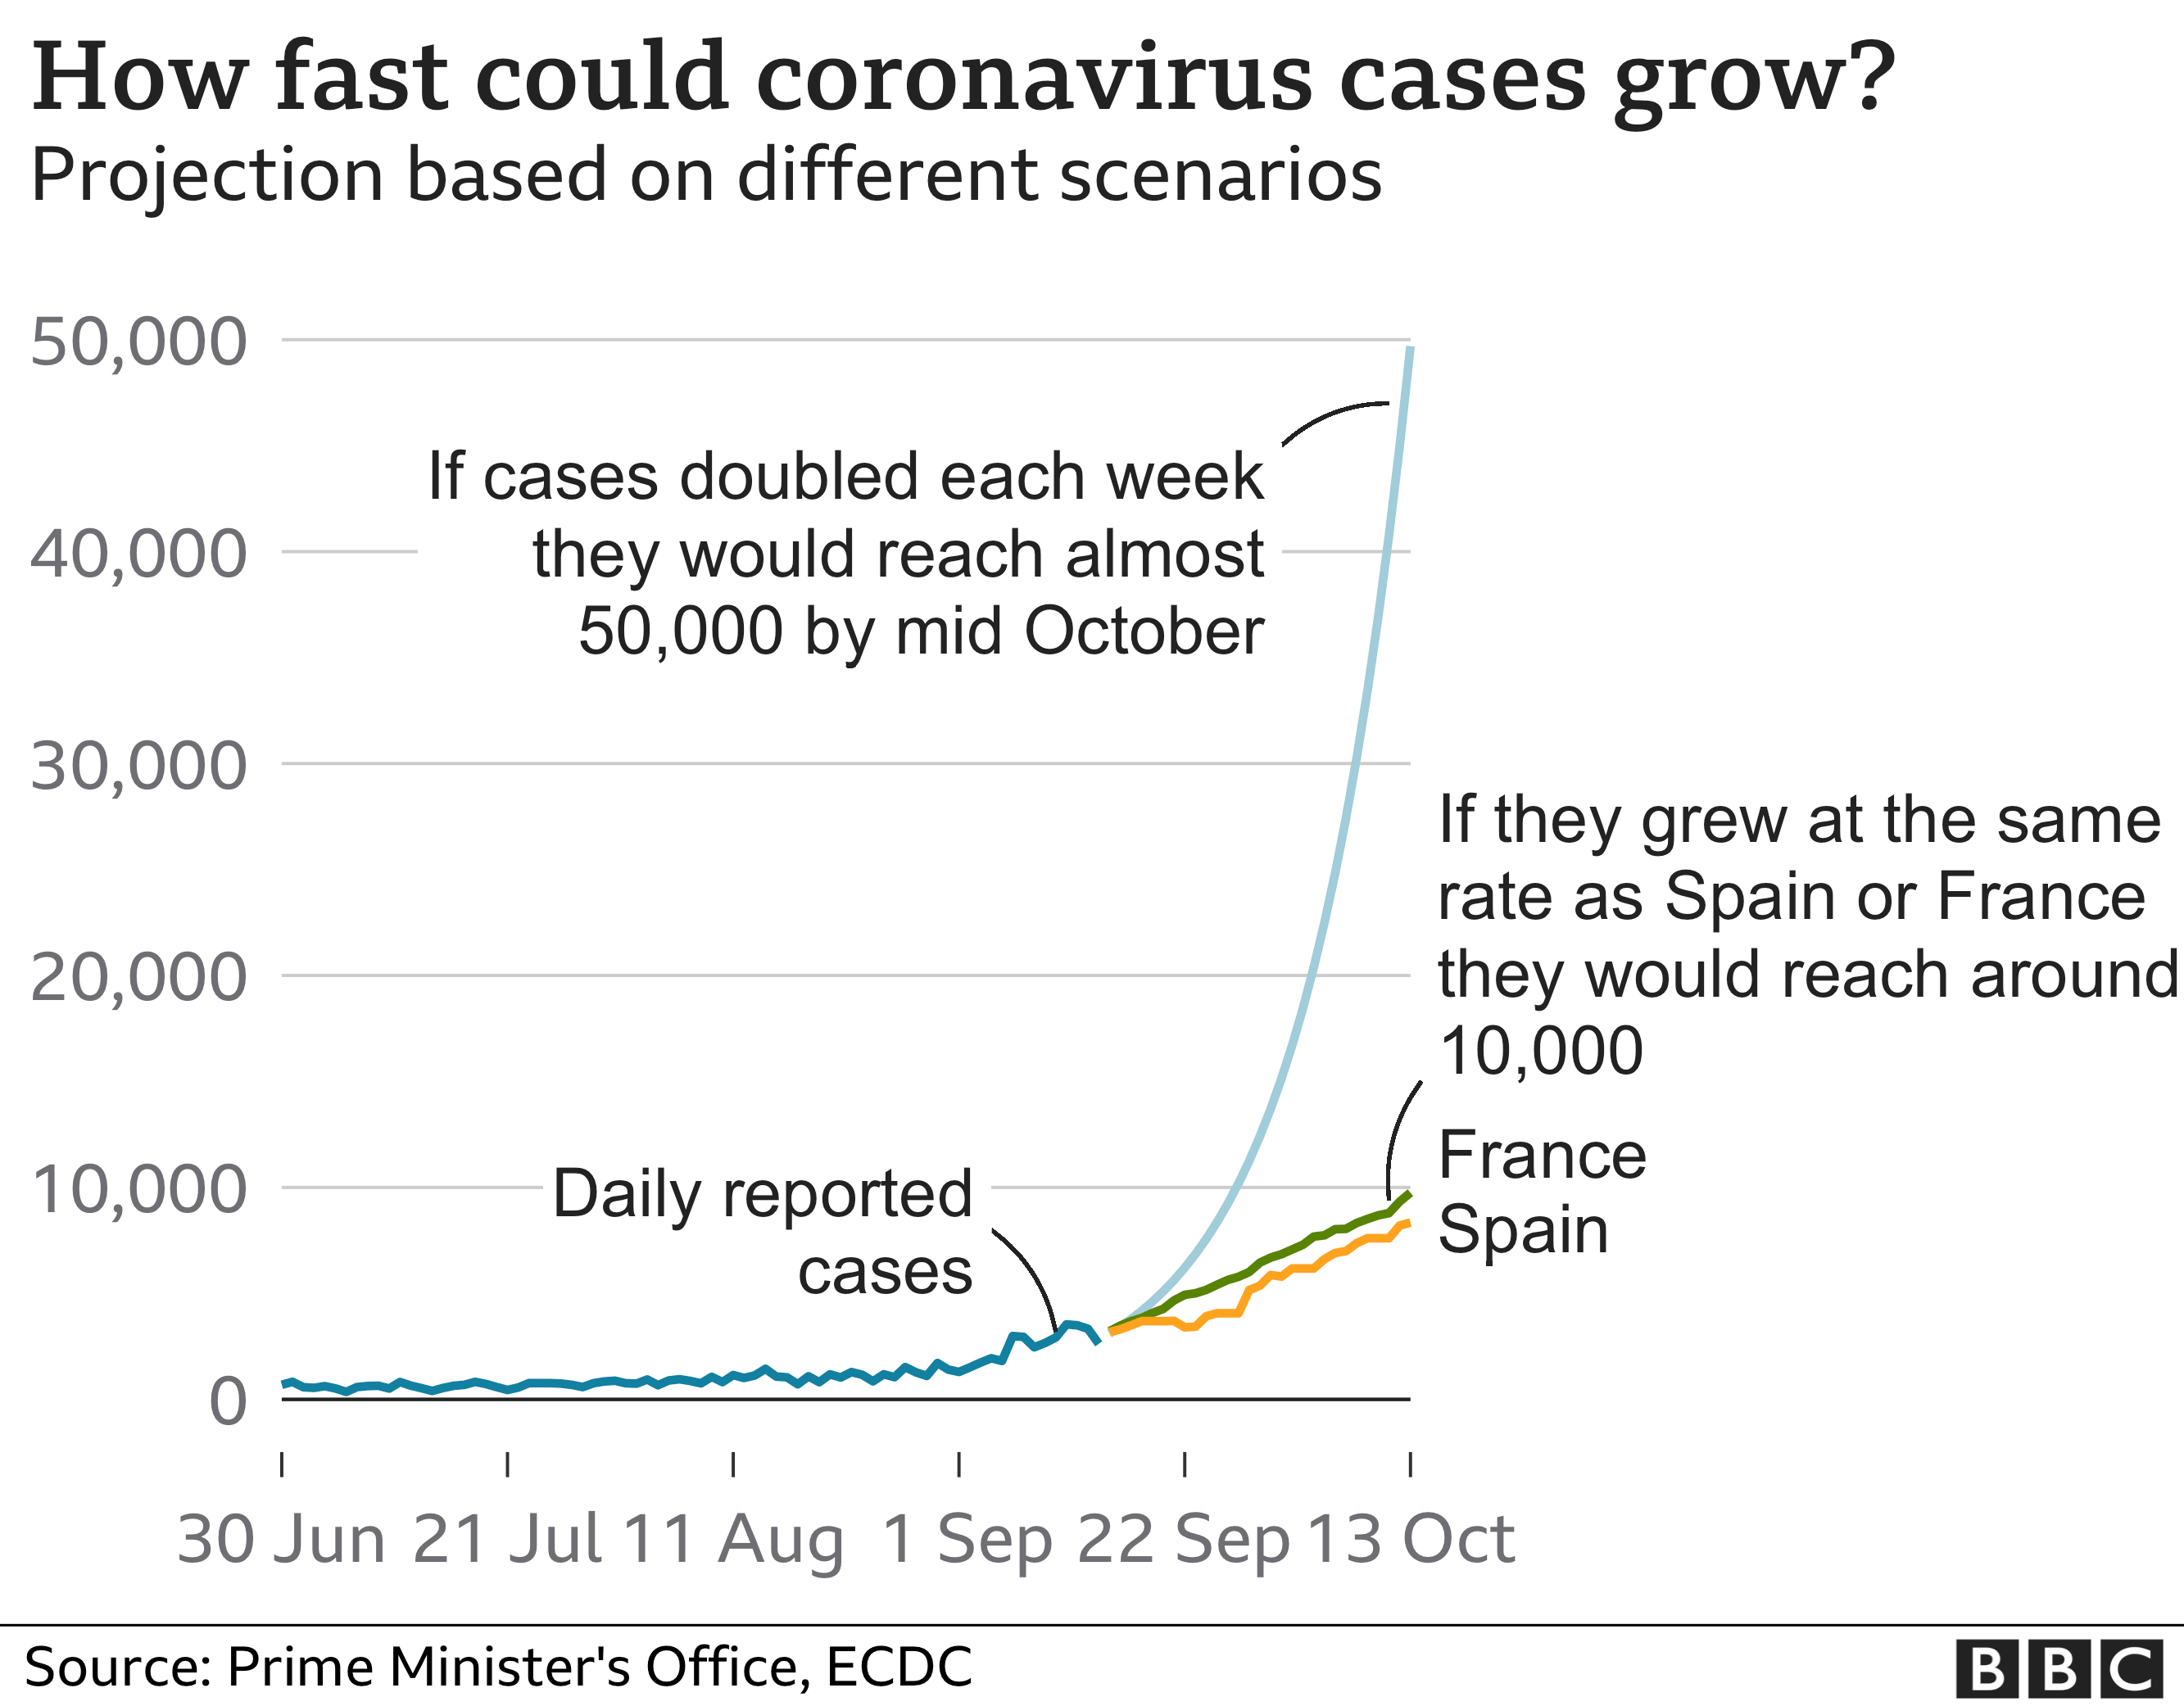 Graph showing how fast coronavirus cases could grow